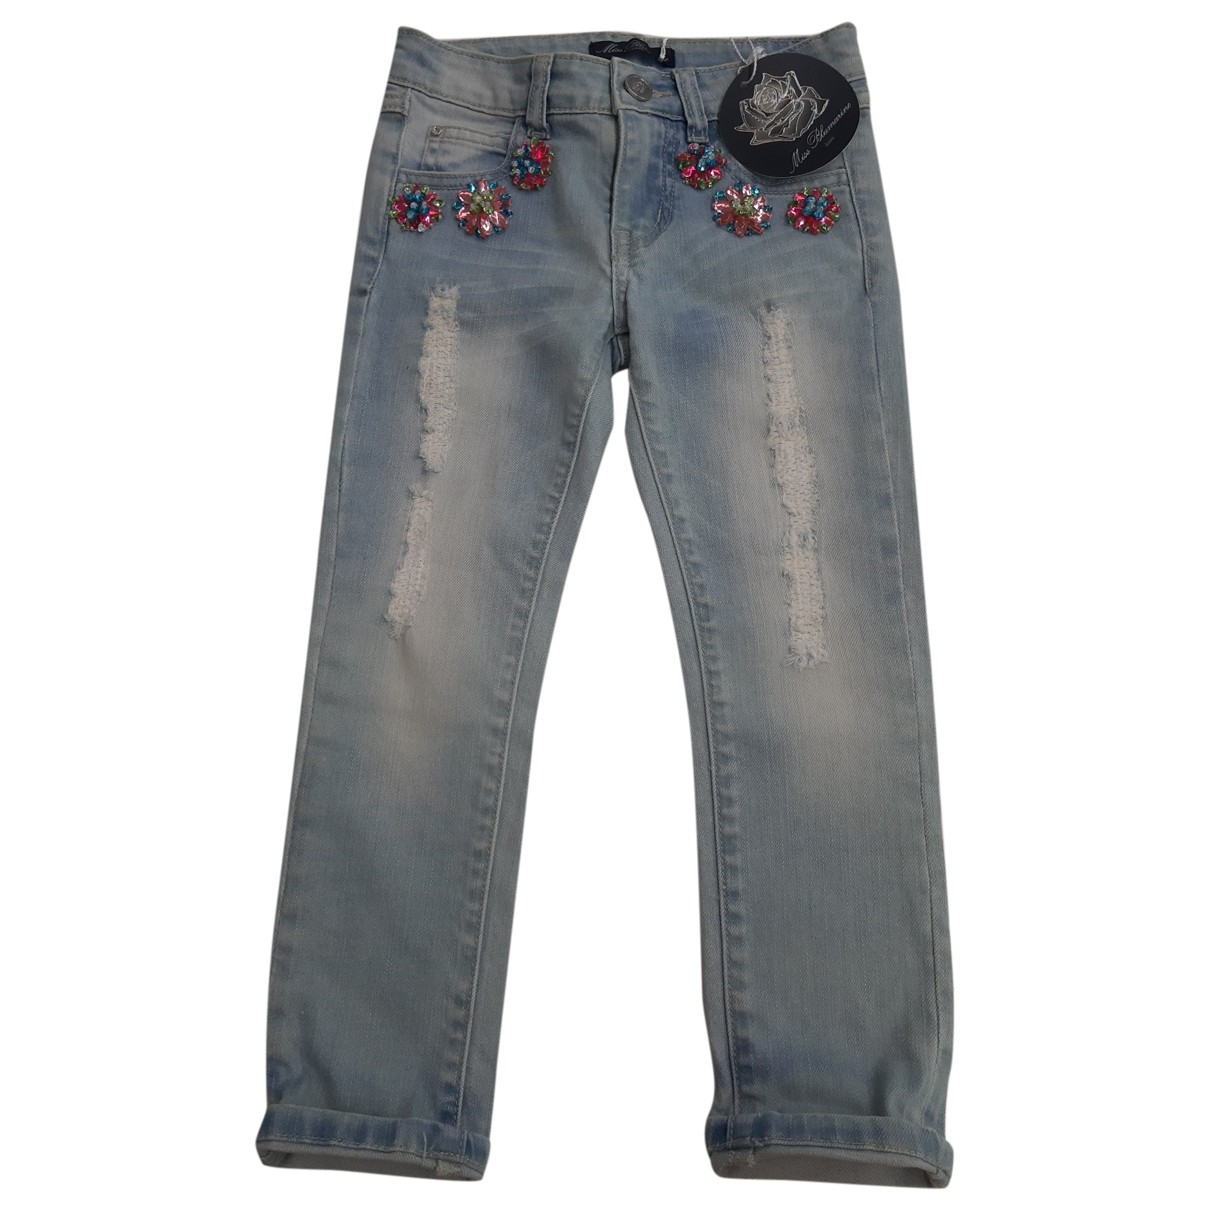 Blumarine \N Denim - Jeans Trousers for Kids 6 years - up to 114cm FR